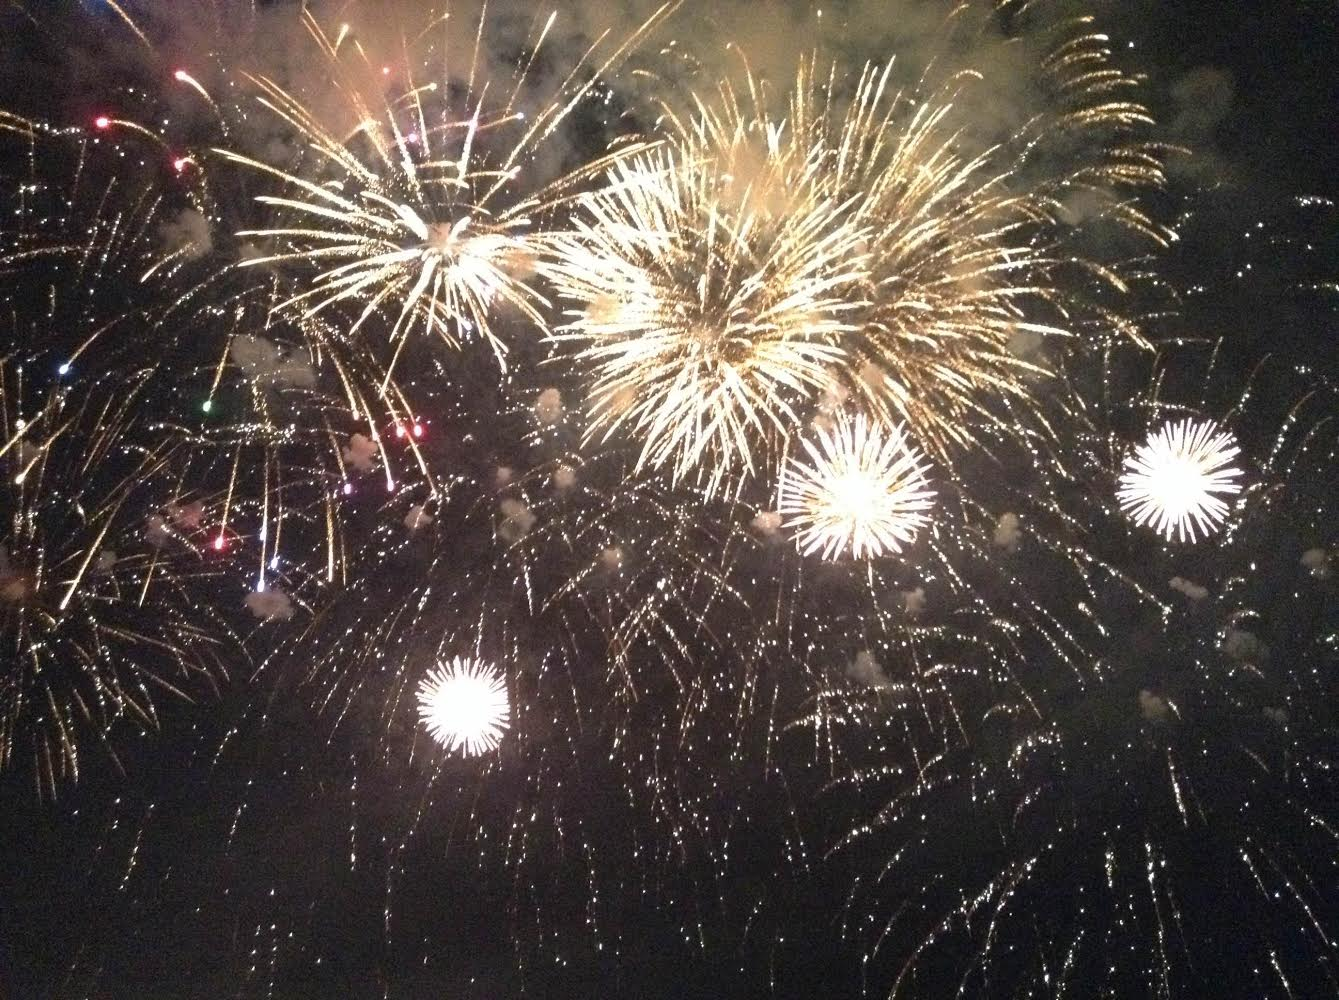 Fireworks brighten the sky during Coney Island's Fire Up the Night event.